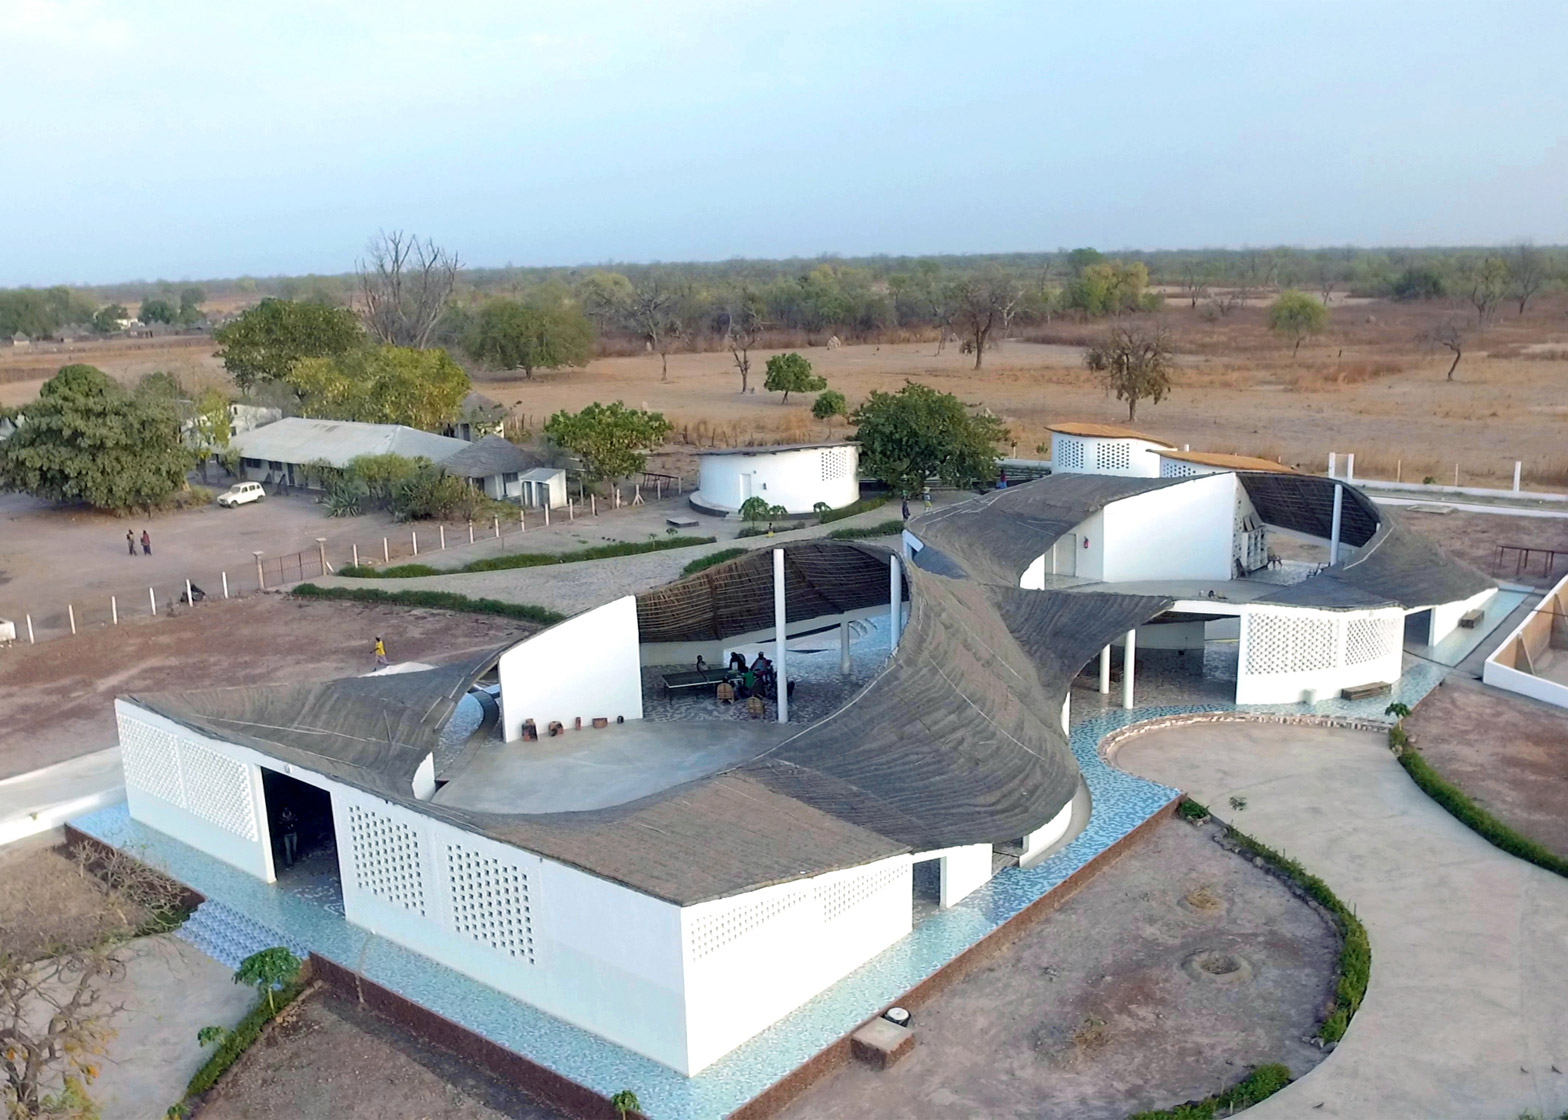 Thread: Artist Residency and Cultural Center, Sinthian, Senegal; by Toshiko Mori Architects